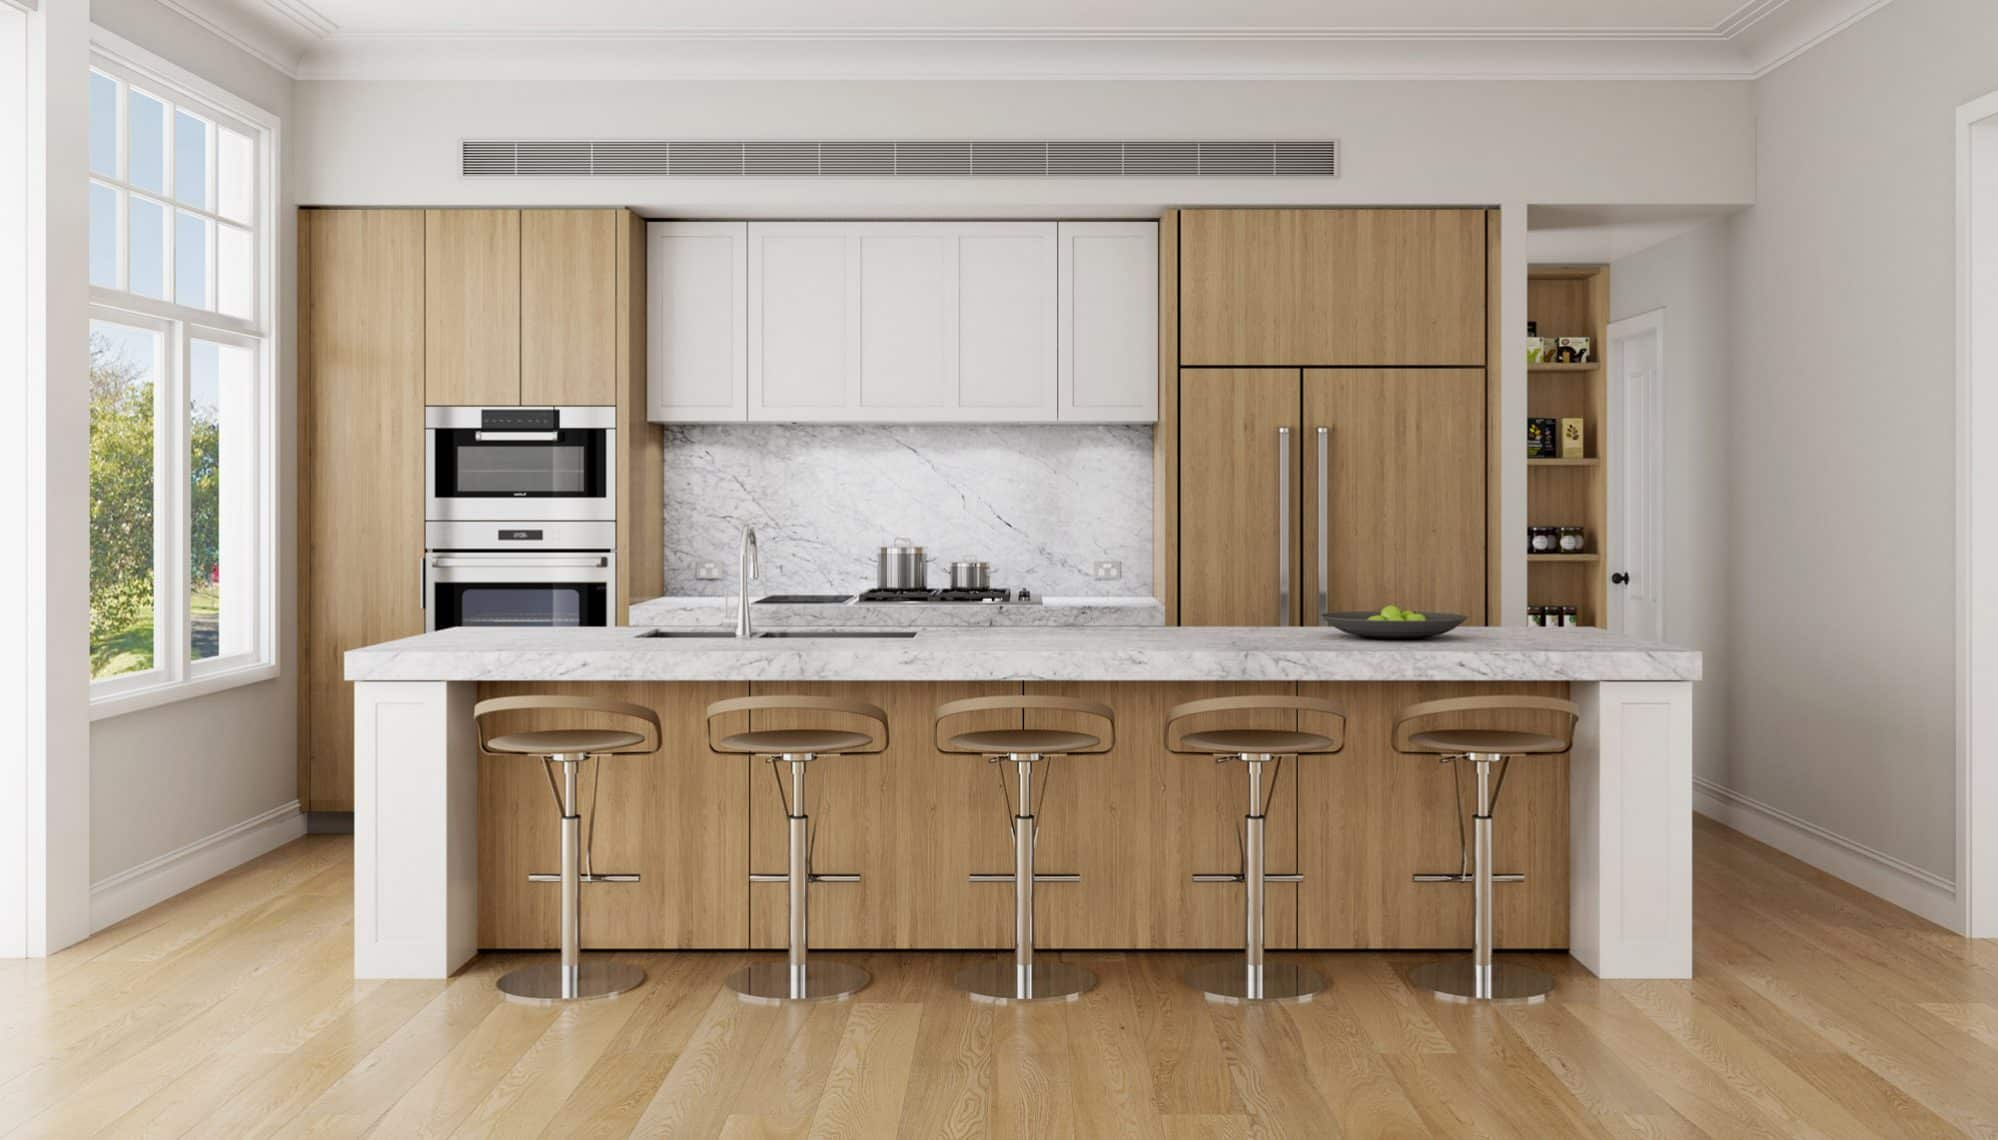 European oak kitchen with Carrara marble island